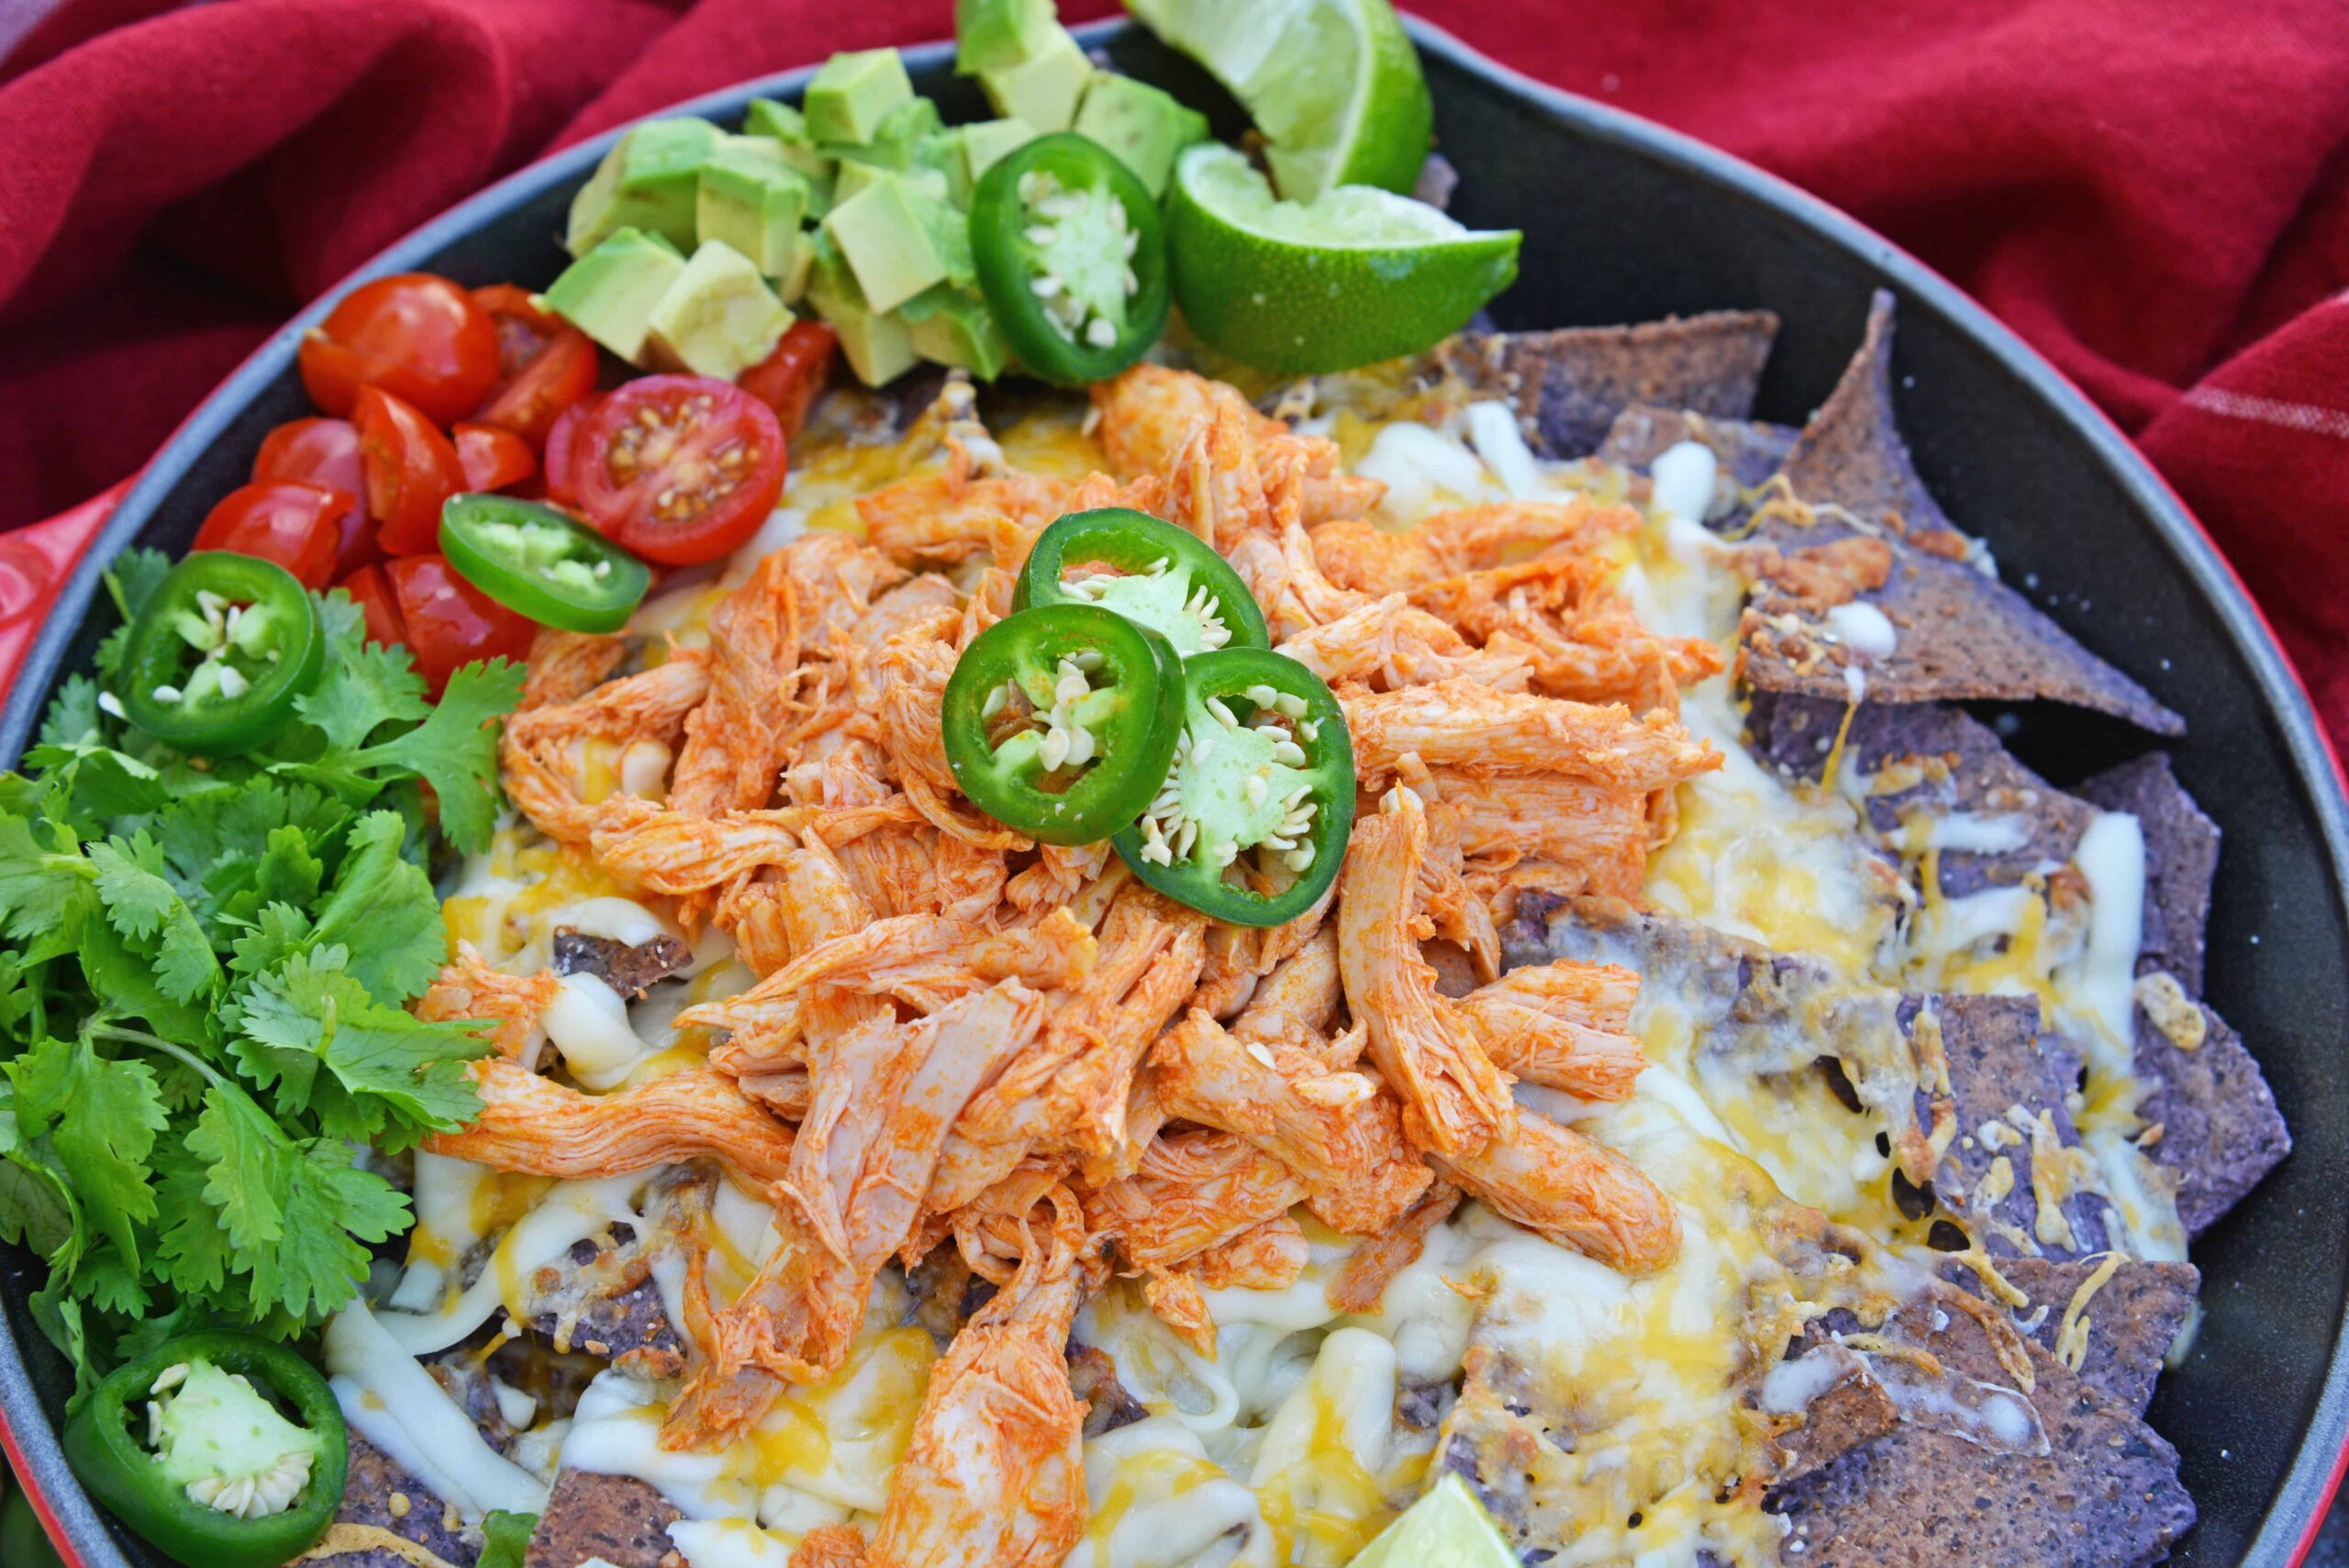 Buffalo Chicken Nachos is an easy nachos recipe that is perfect for a quick Tex Mex meal or game day appetizer. Ready in minutes with few ingredients! #buffalochickennachos #buffalochicken #nachosrecipe www.savoryexperiments.com